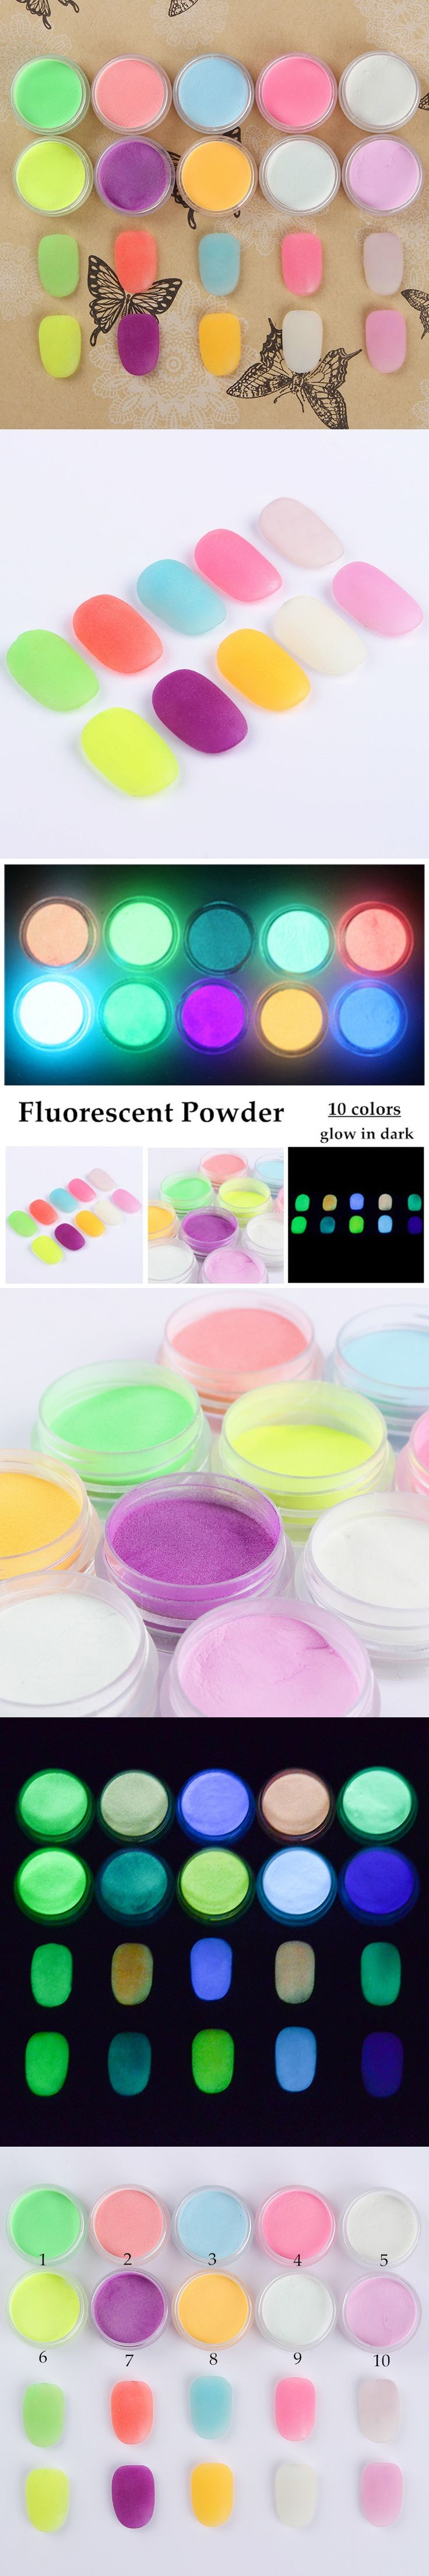 10 Neon Colors Luminous Fluorescent Powder Graffiti Glow In Dark Nail Art Acrylic Use Pigment Party Wall Body Painting Manicure